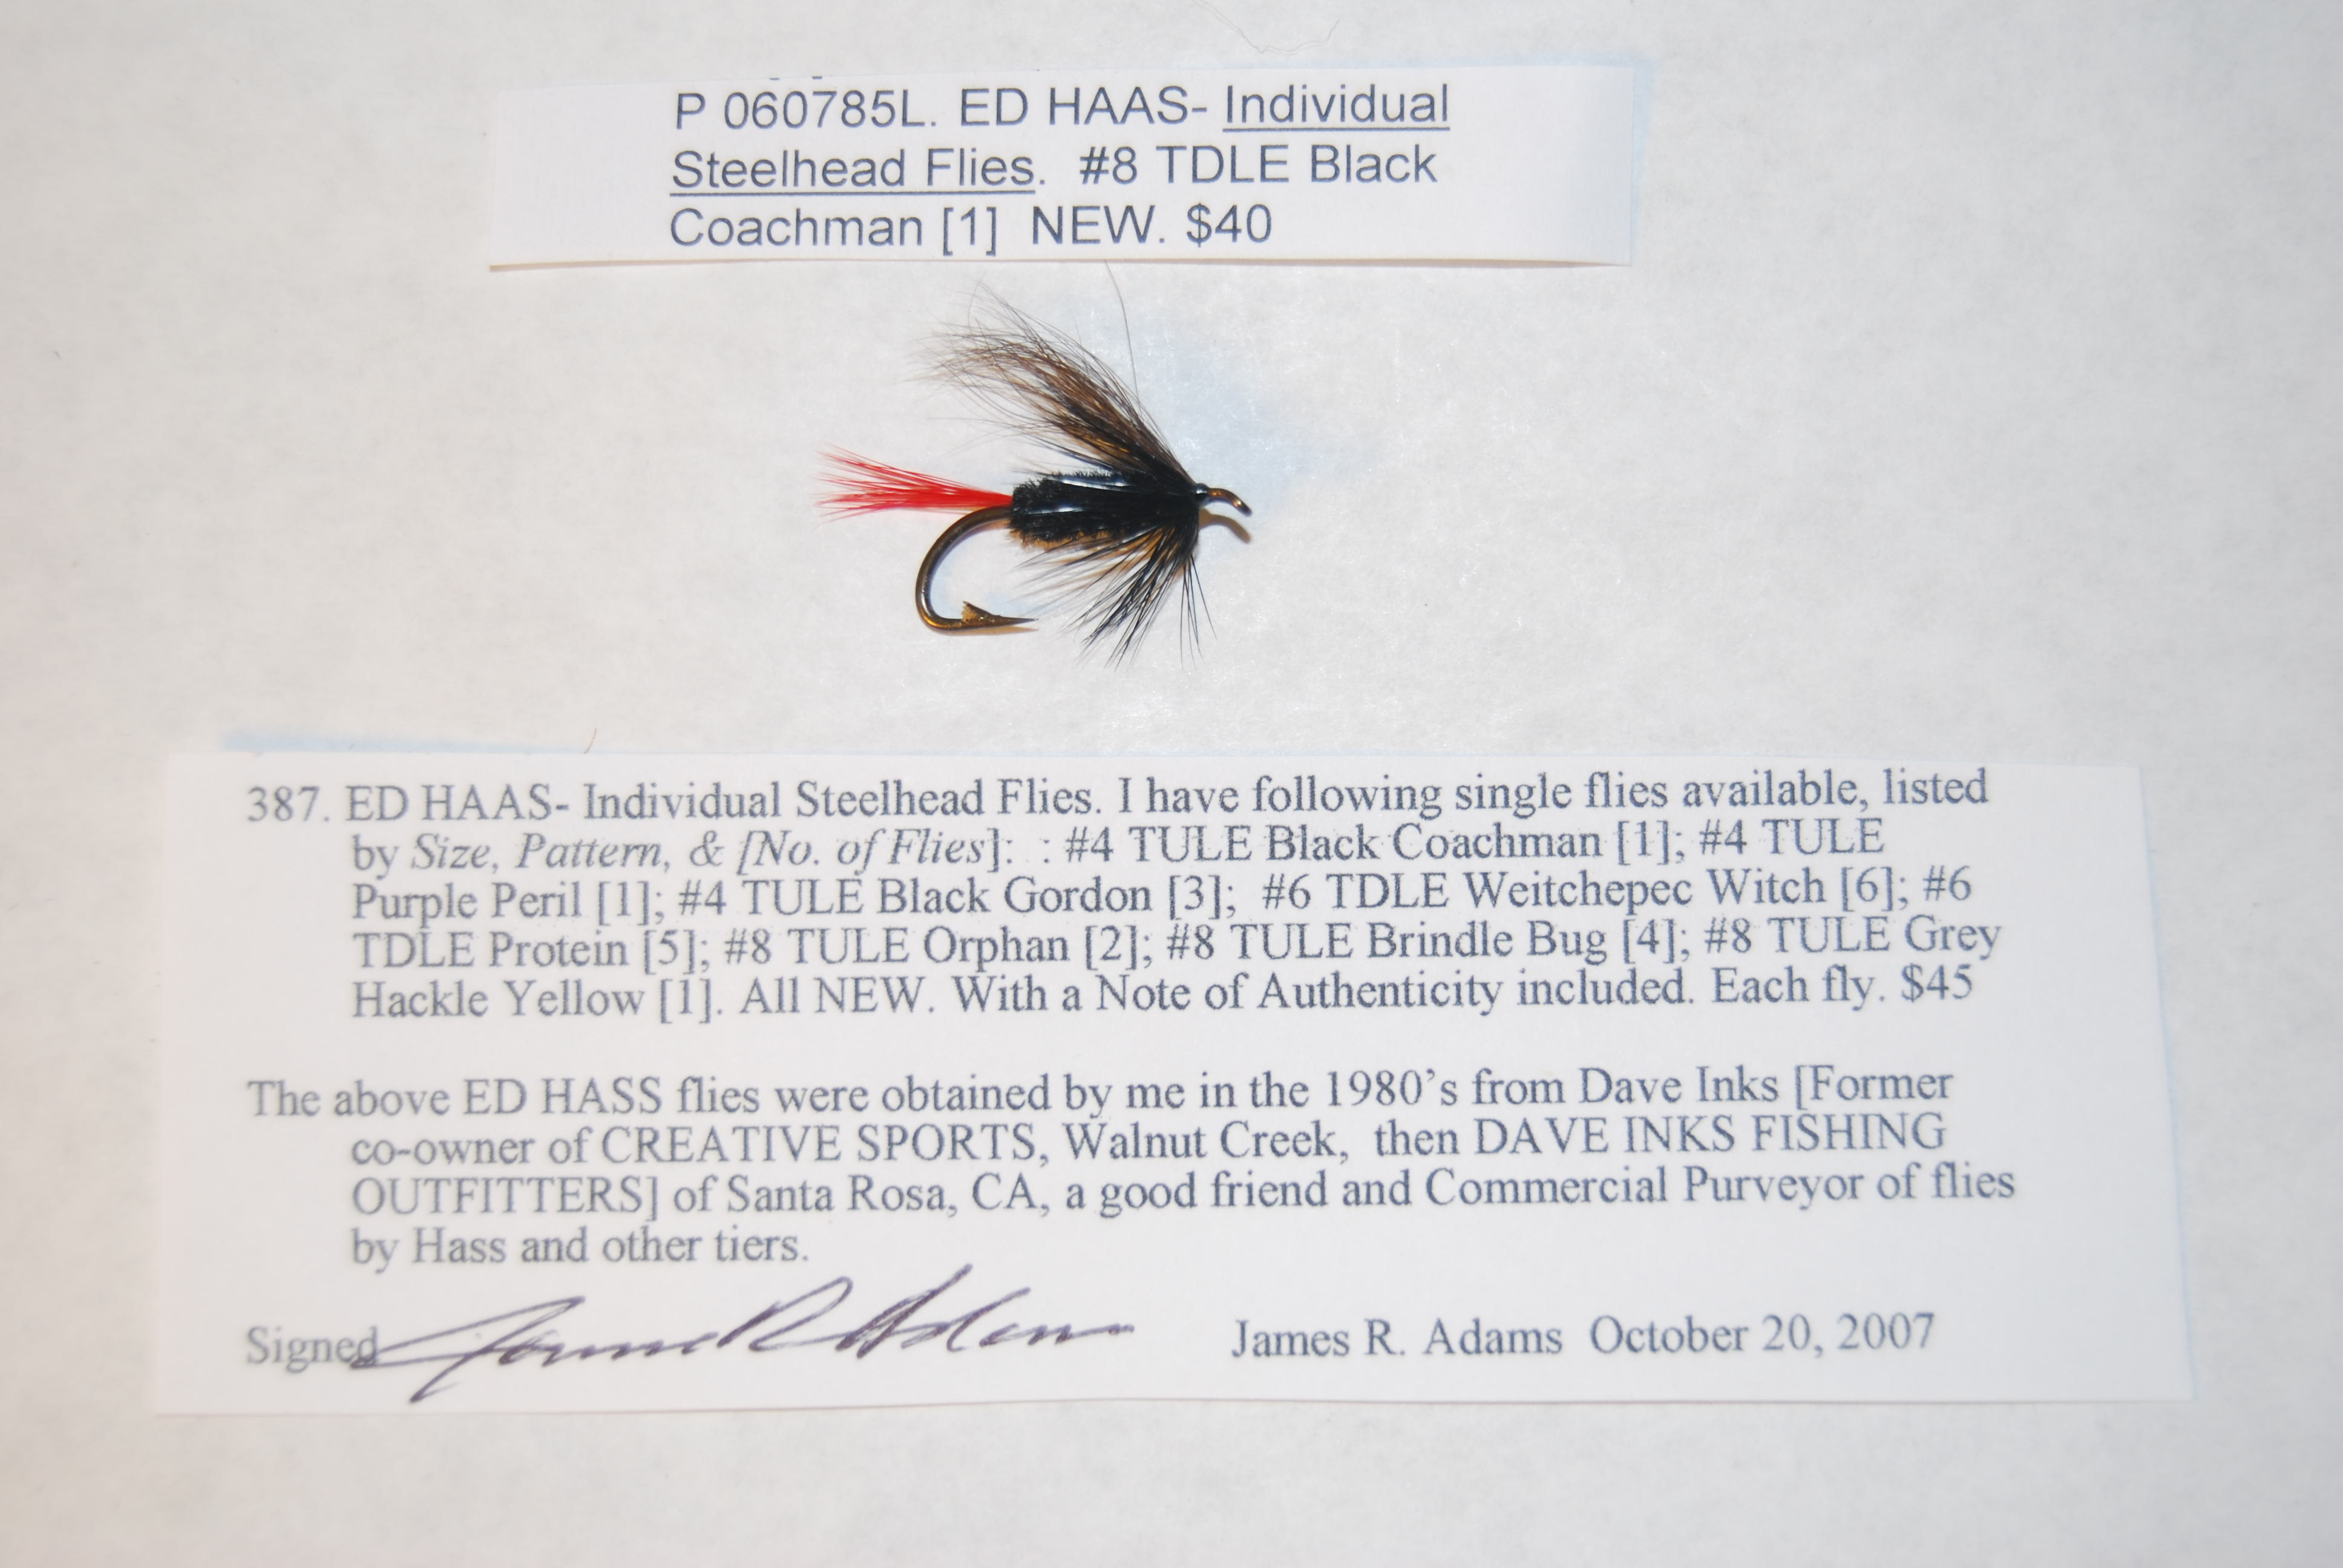 Image for ED HAAS- Individual Steelhead Flies. #8 TDLE Black Coachman.